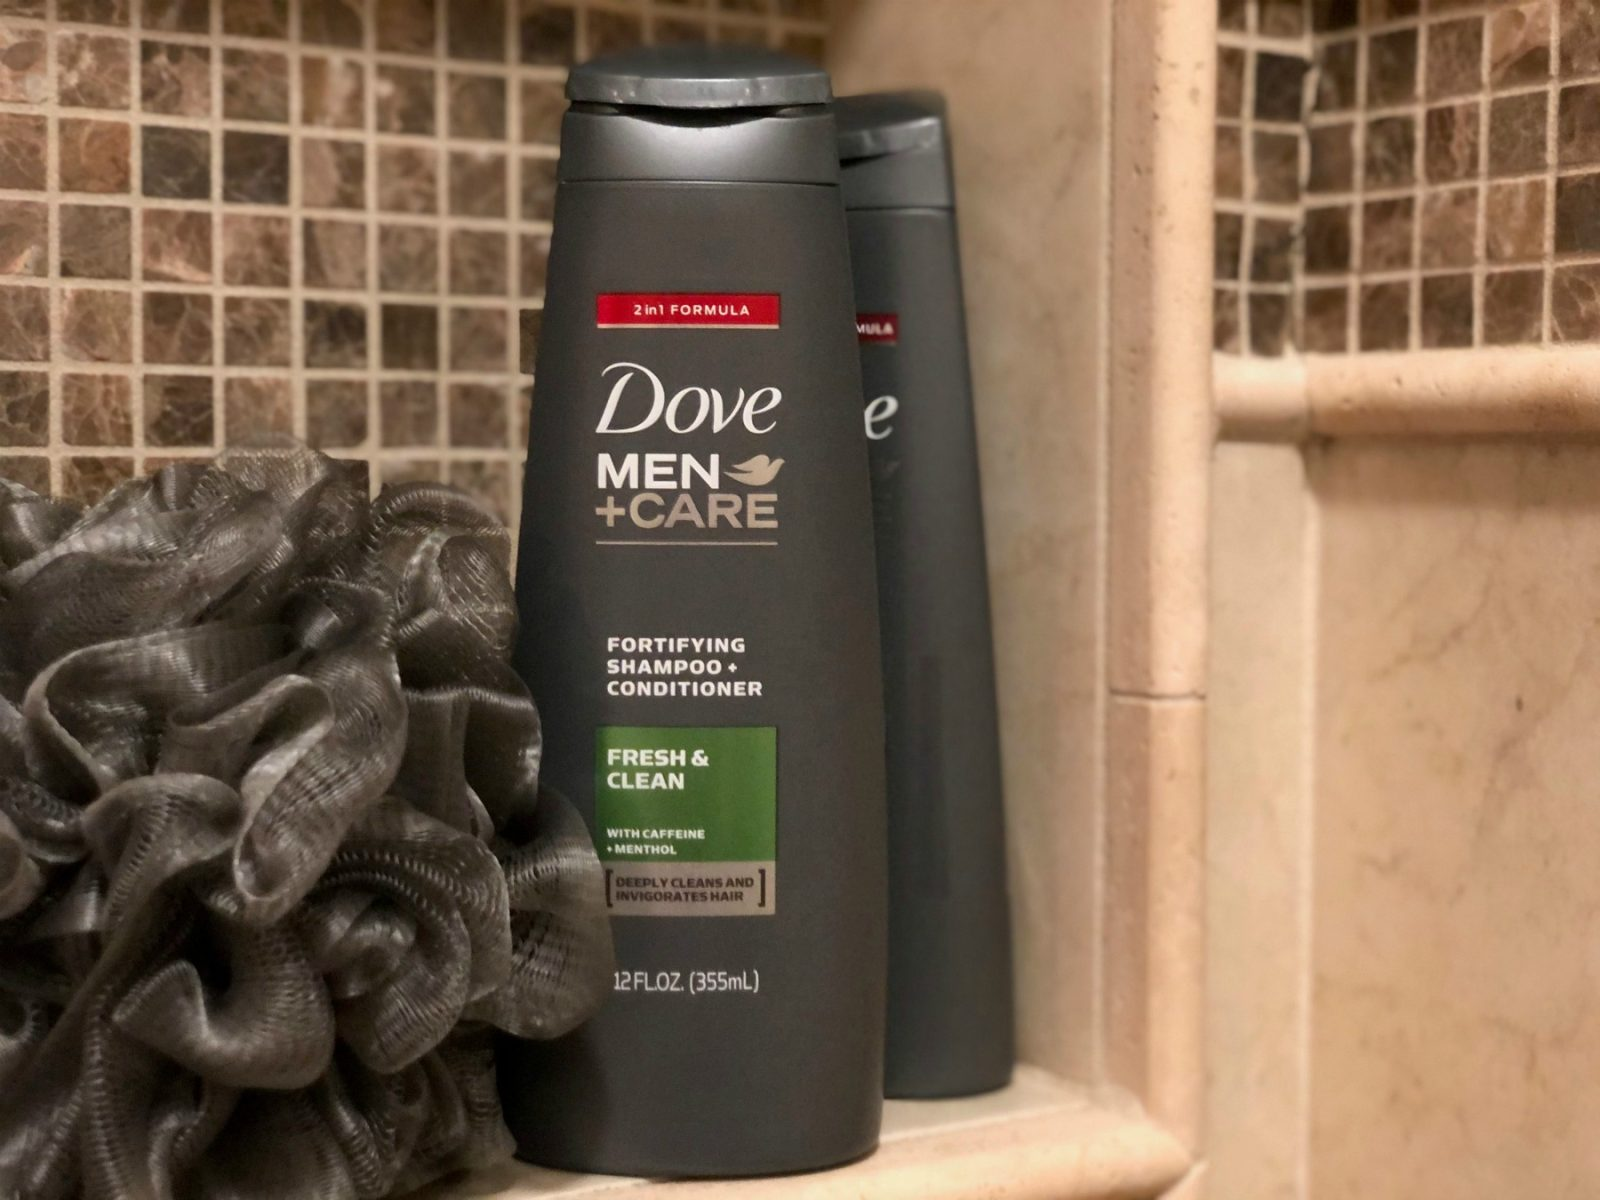 Dove Men+Care Hair Care Products As Low As $1.50 At Publix on I Heart Publix 4